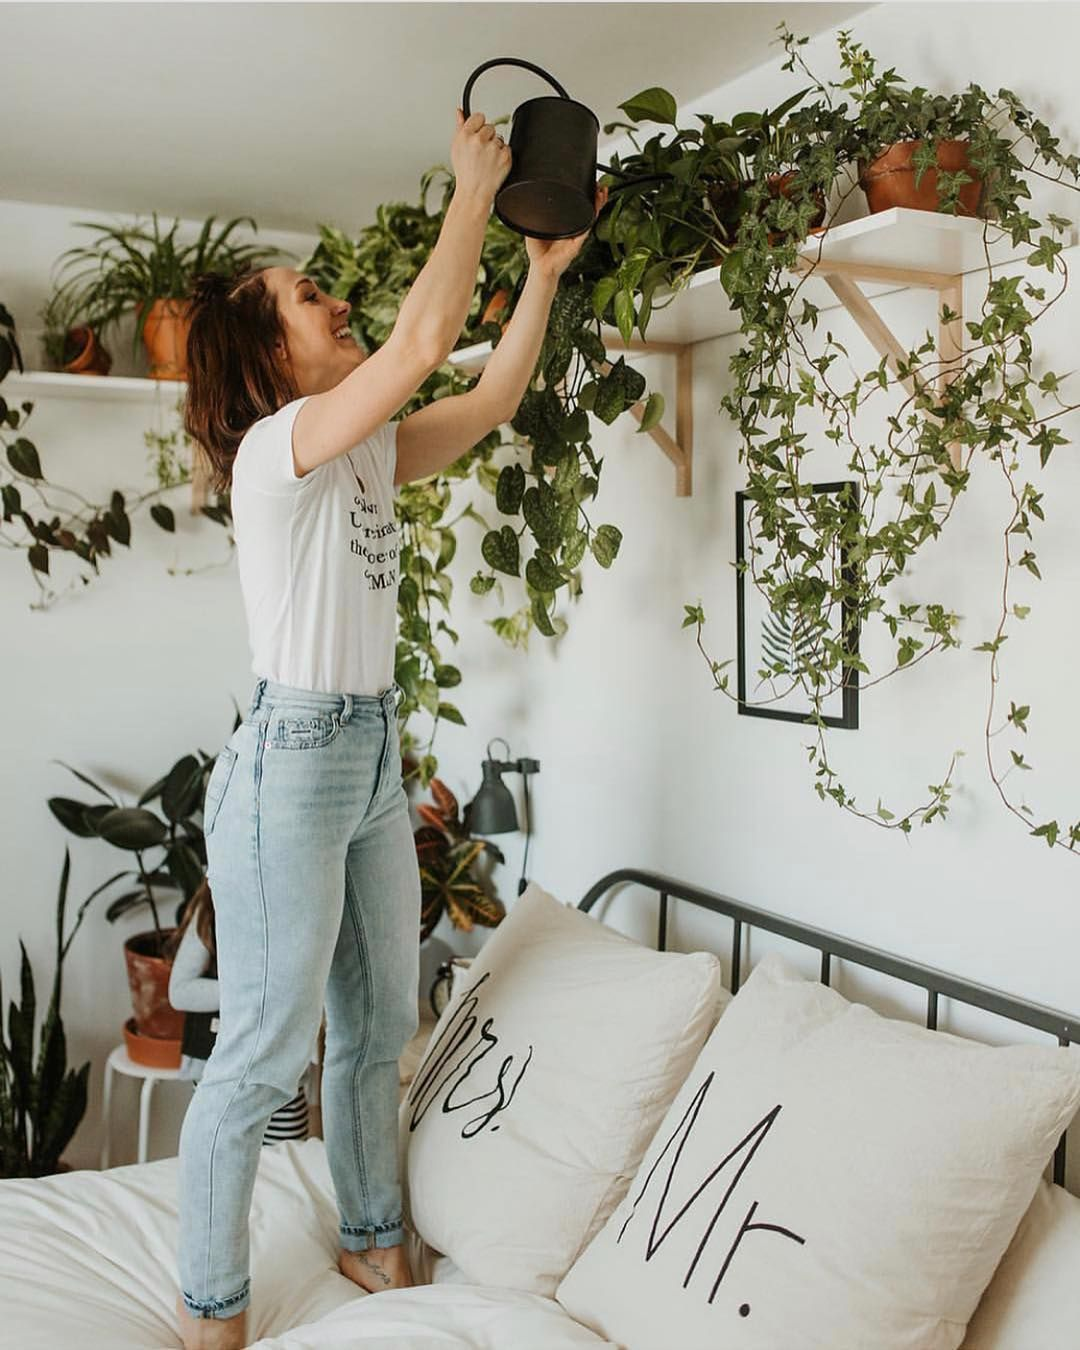 z ro dechet 10 astuces r cup pour fortifier ses plantes astuces pinterest. Black Bedroom Furniture Sets. Home Design Ideas